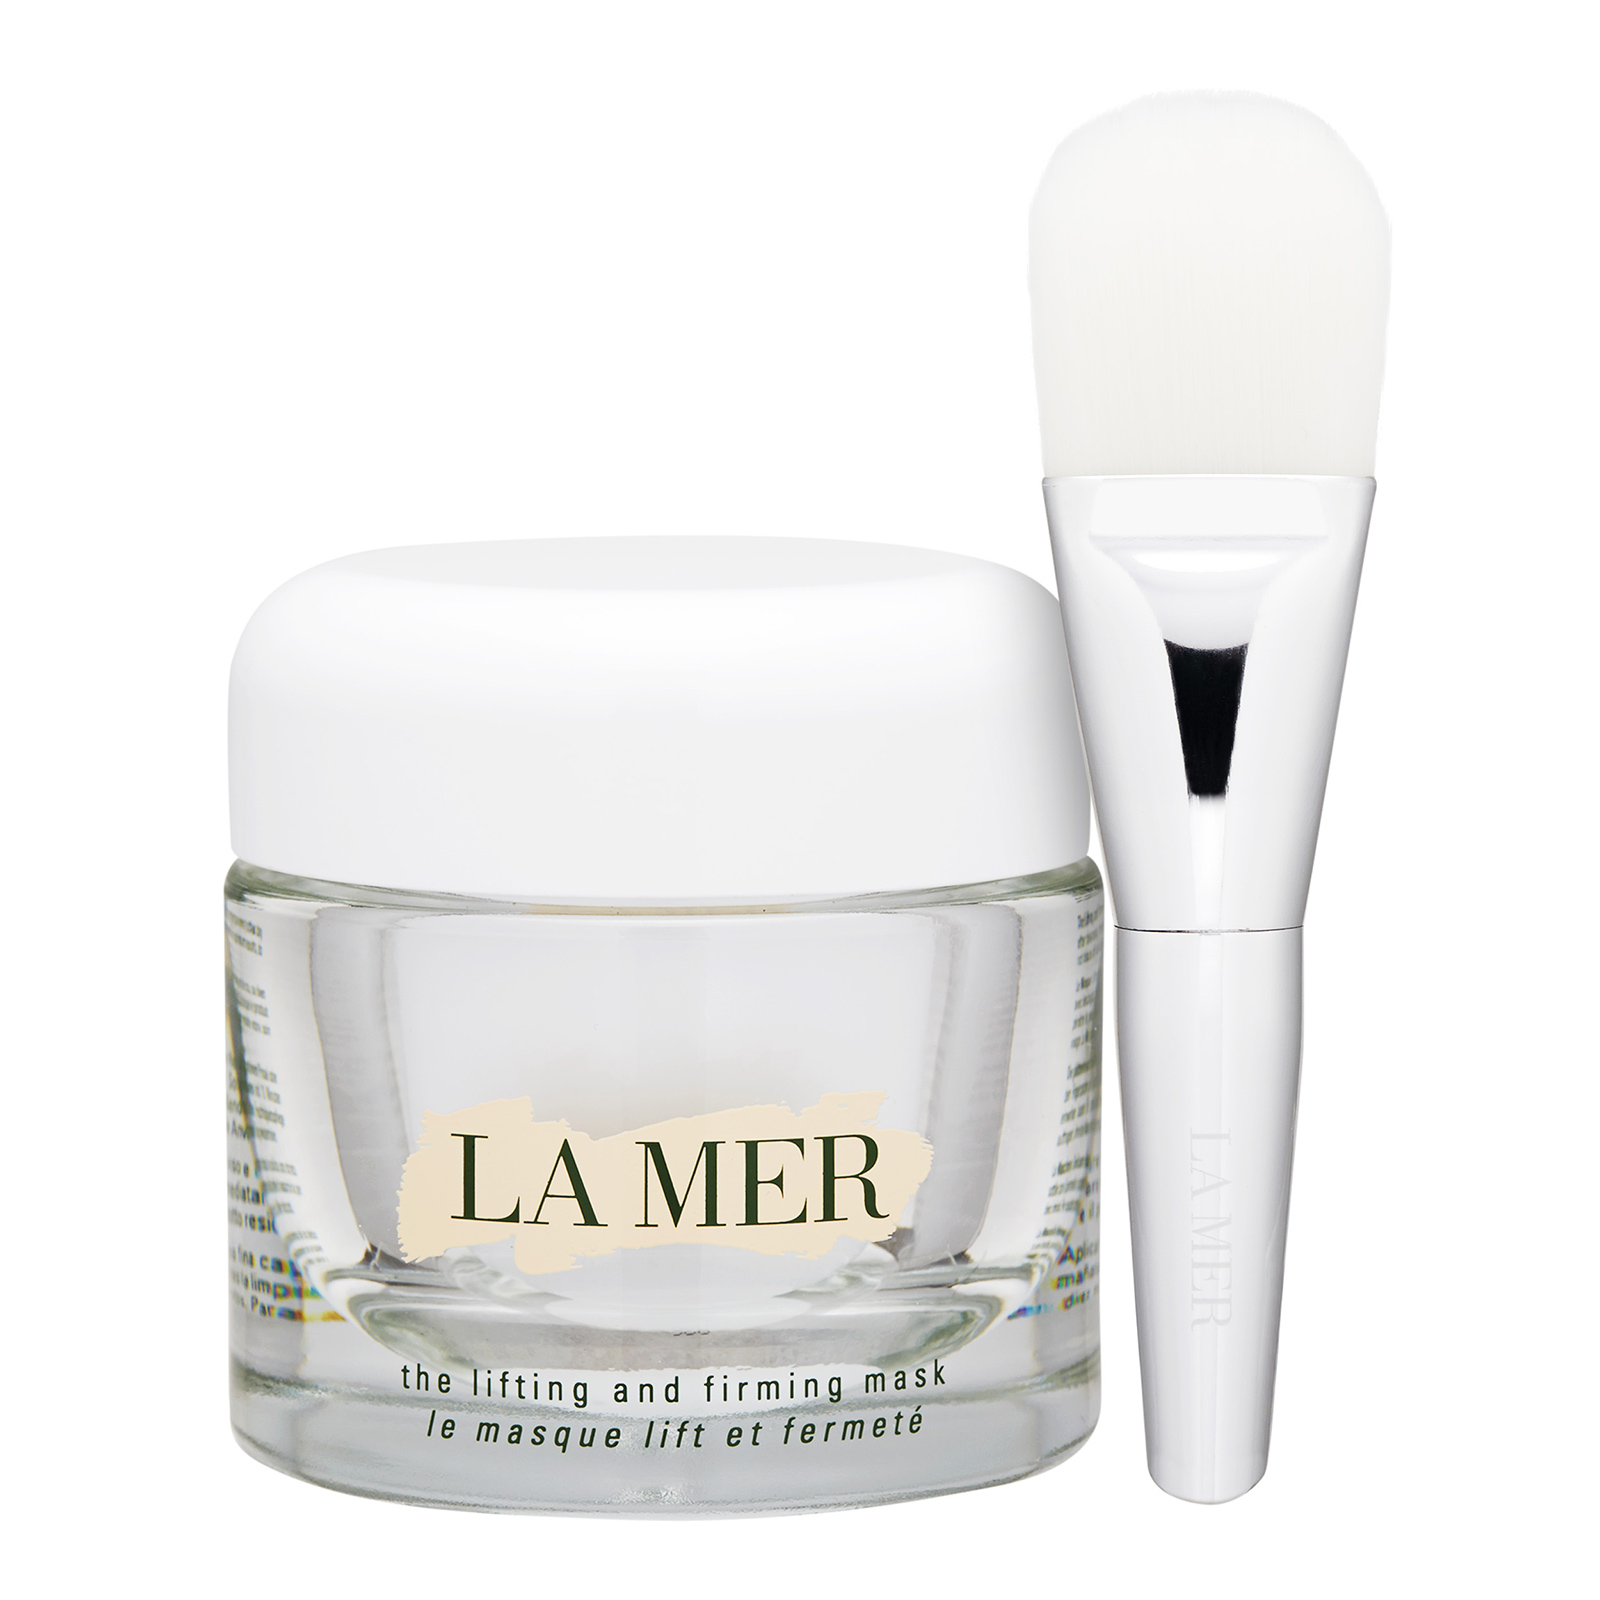 La Mer The Lifting and Firming Mask 1.7oz, 50ml